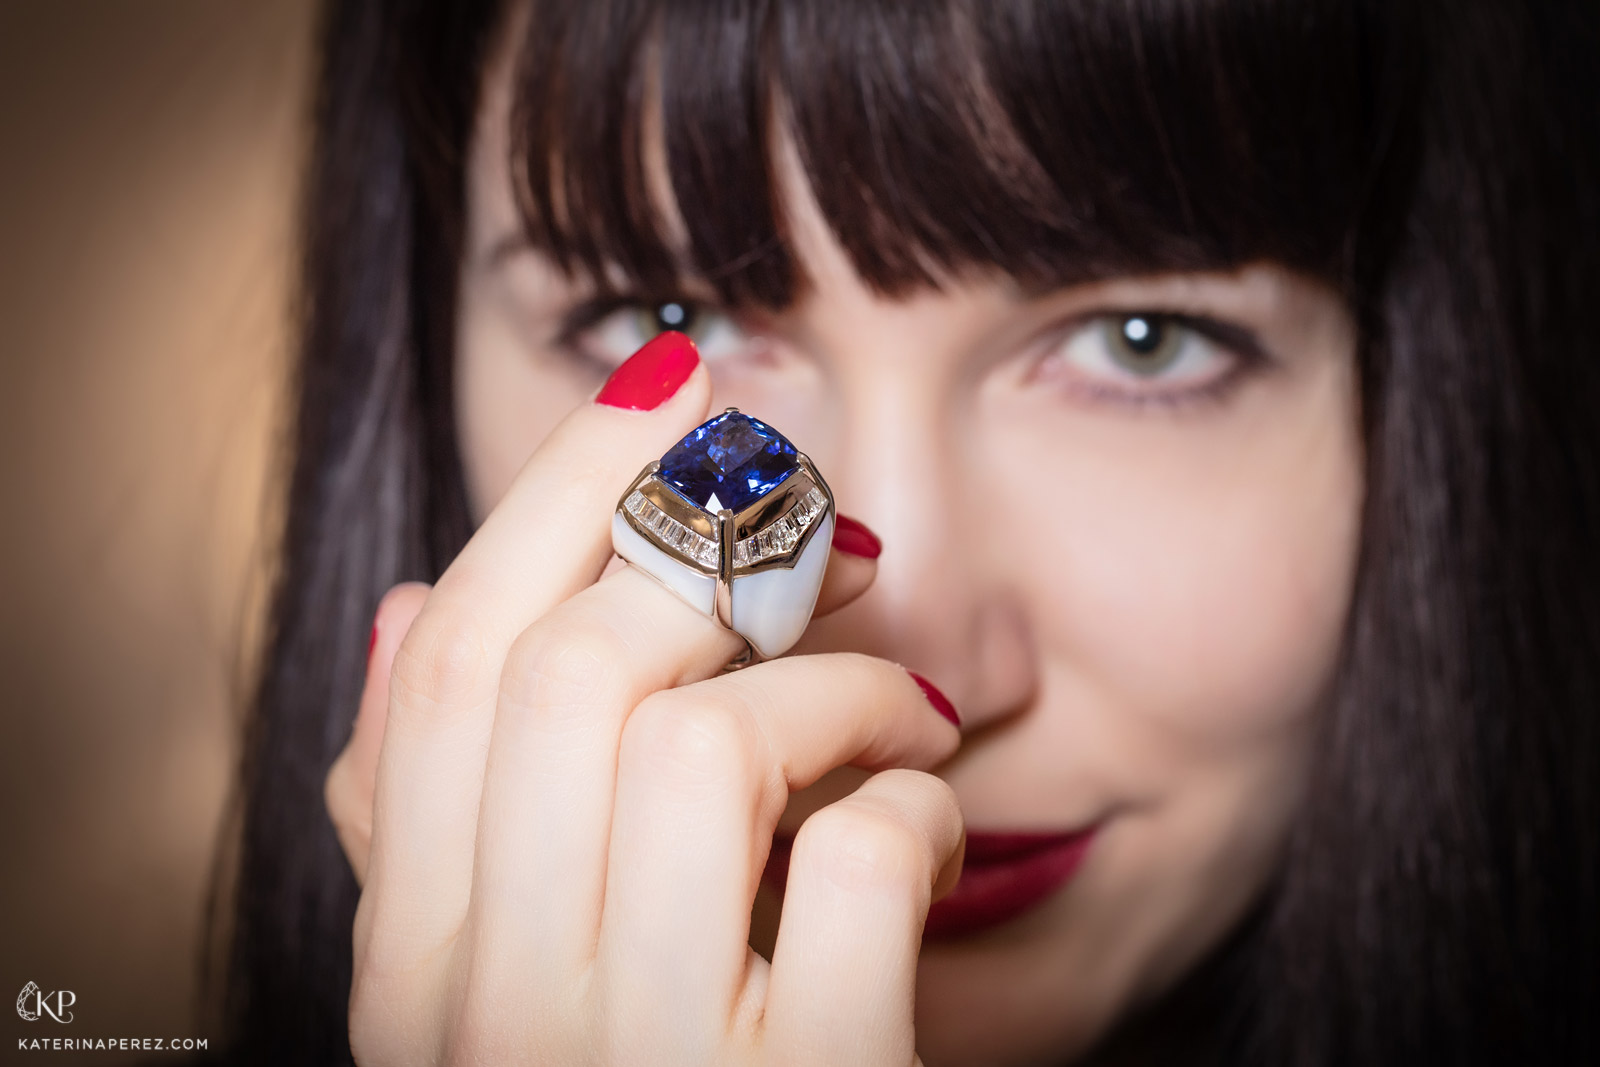 Veschetti ring with sapphires and diamonds inlaid into mother of pearl. Photo by Simon Martner for katerinaperez.com